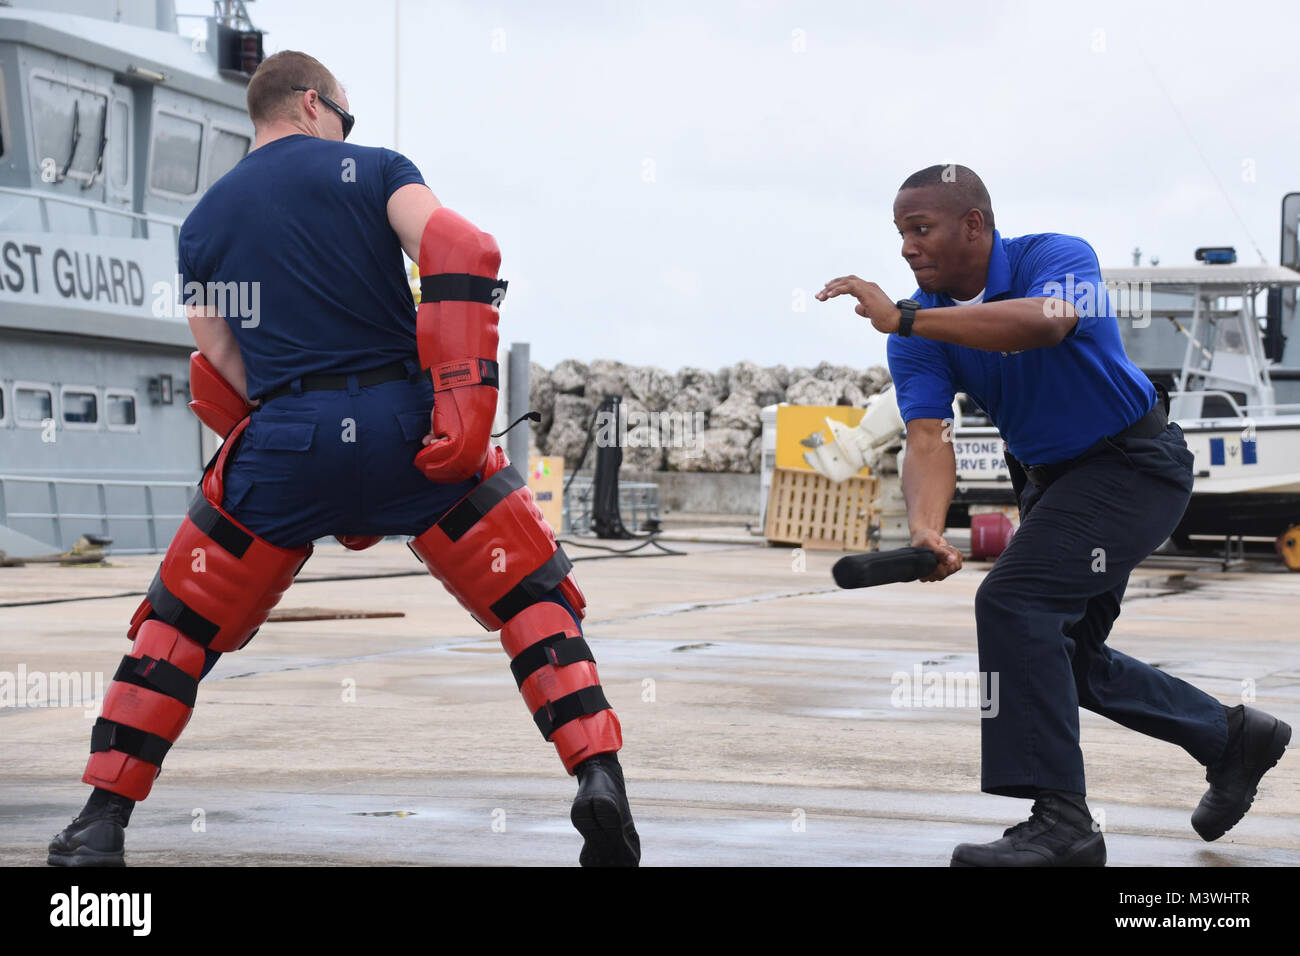 Steven Celestine, a member of the Commonwealth of Dominica Coast Guard, practices law enforcement techniques during - Stock Image